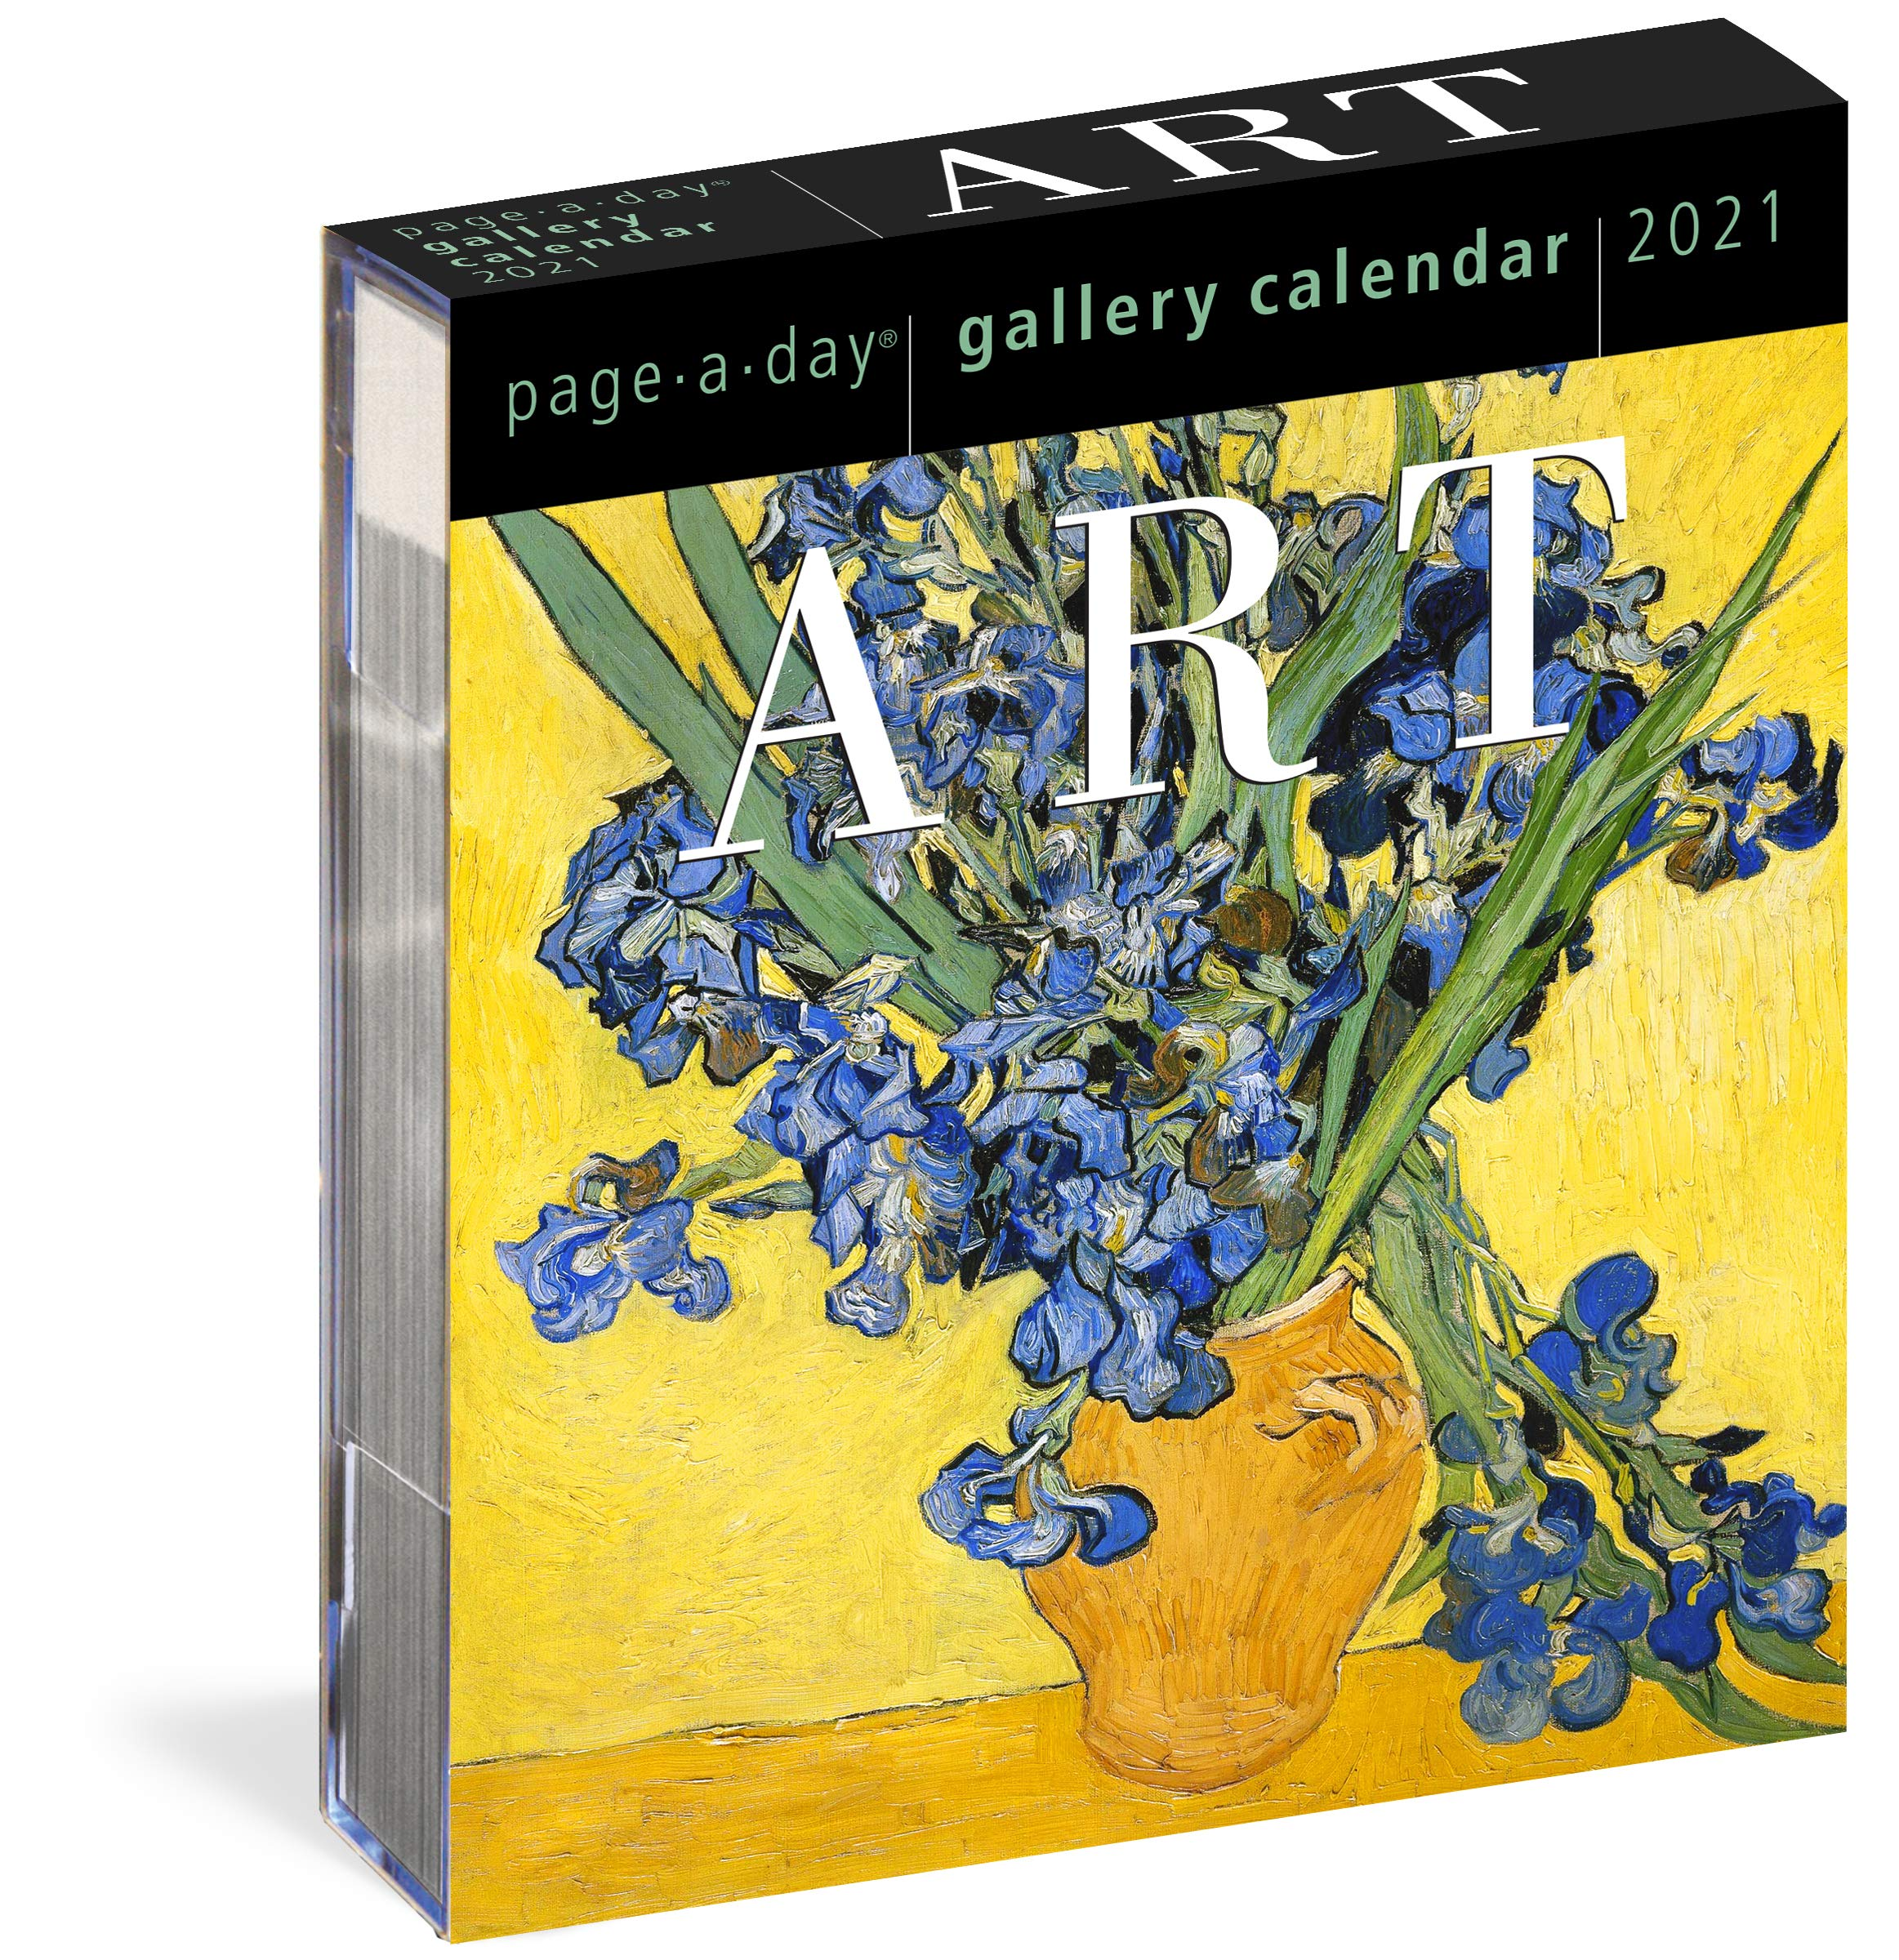 Page A Day Gallery Calendar 2021 Art Page A Day Gallery Calendar 2021: Workman Calendars